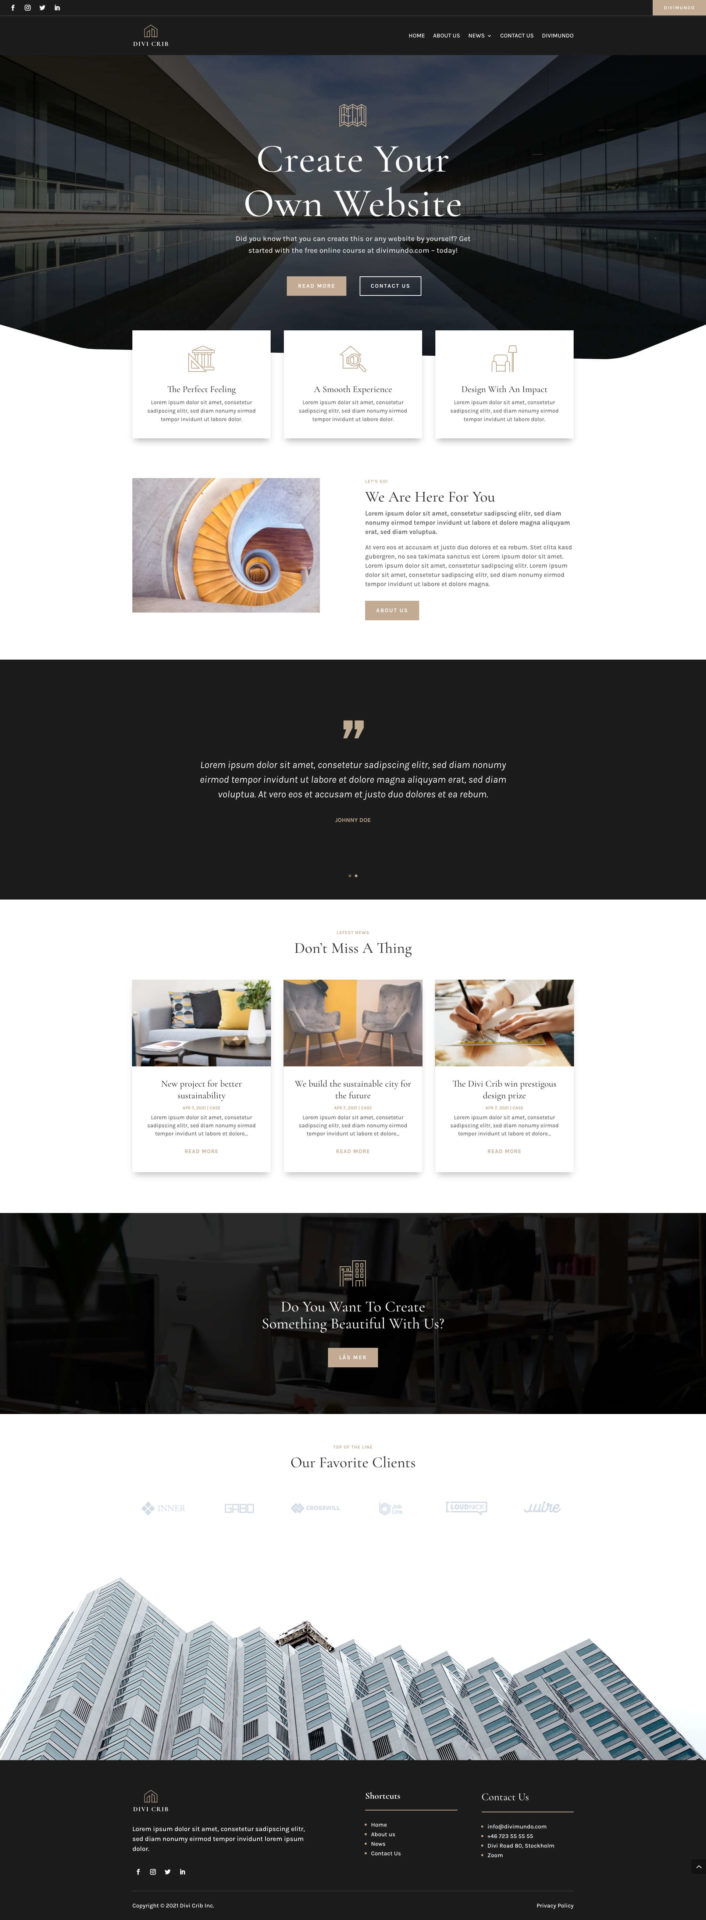 Homepage made with Divi